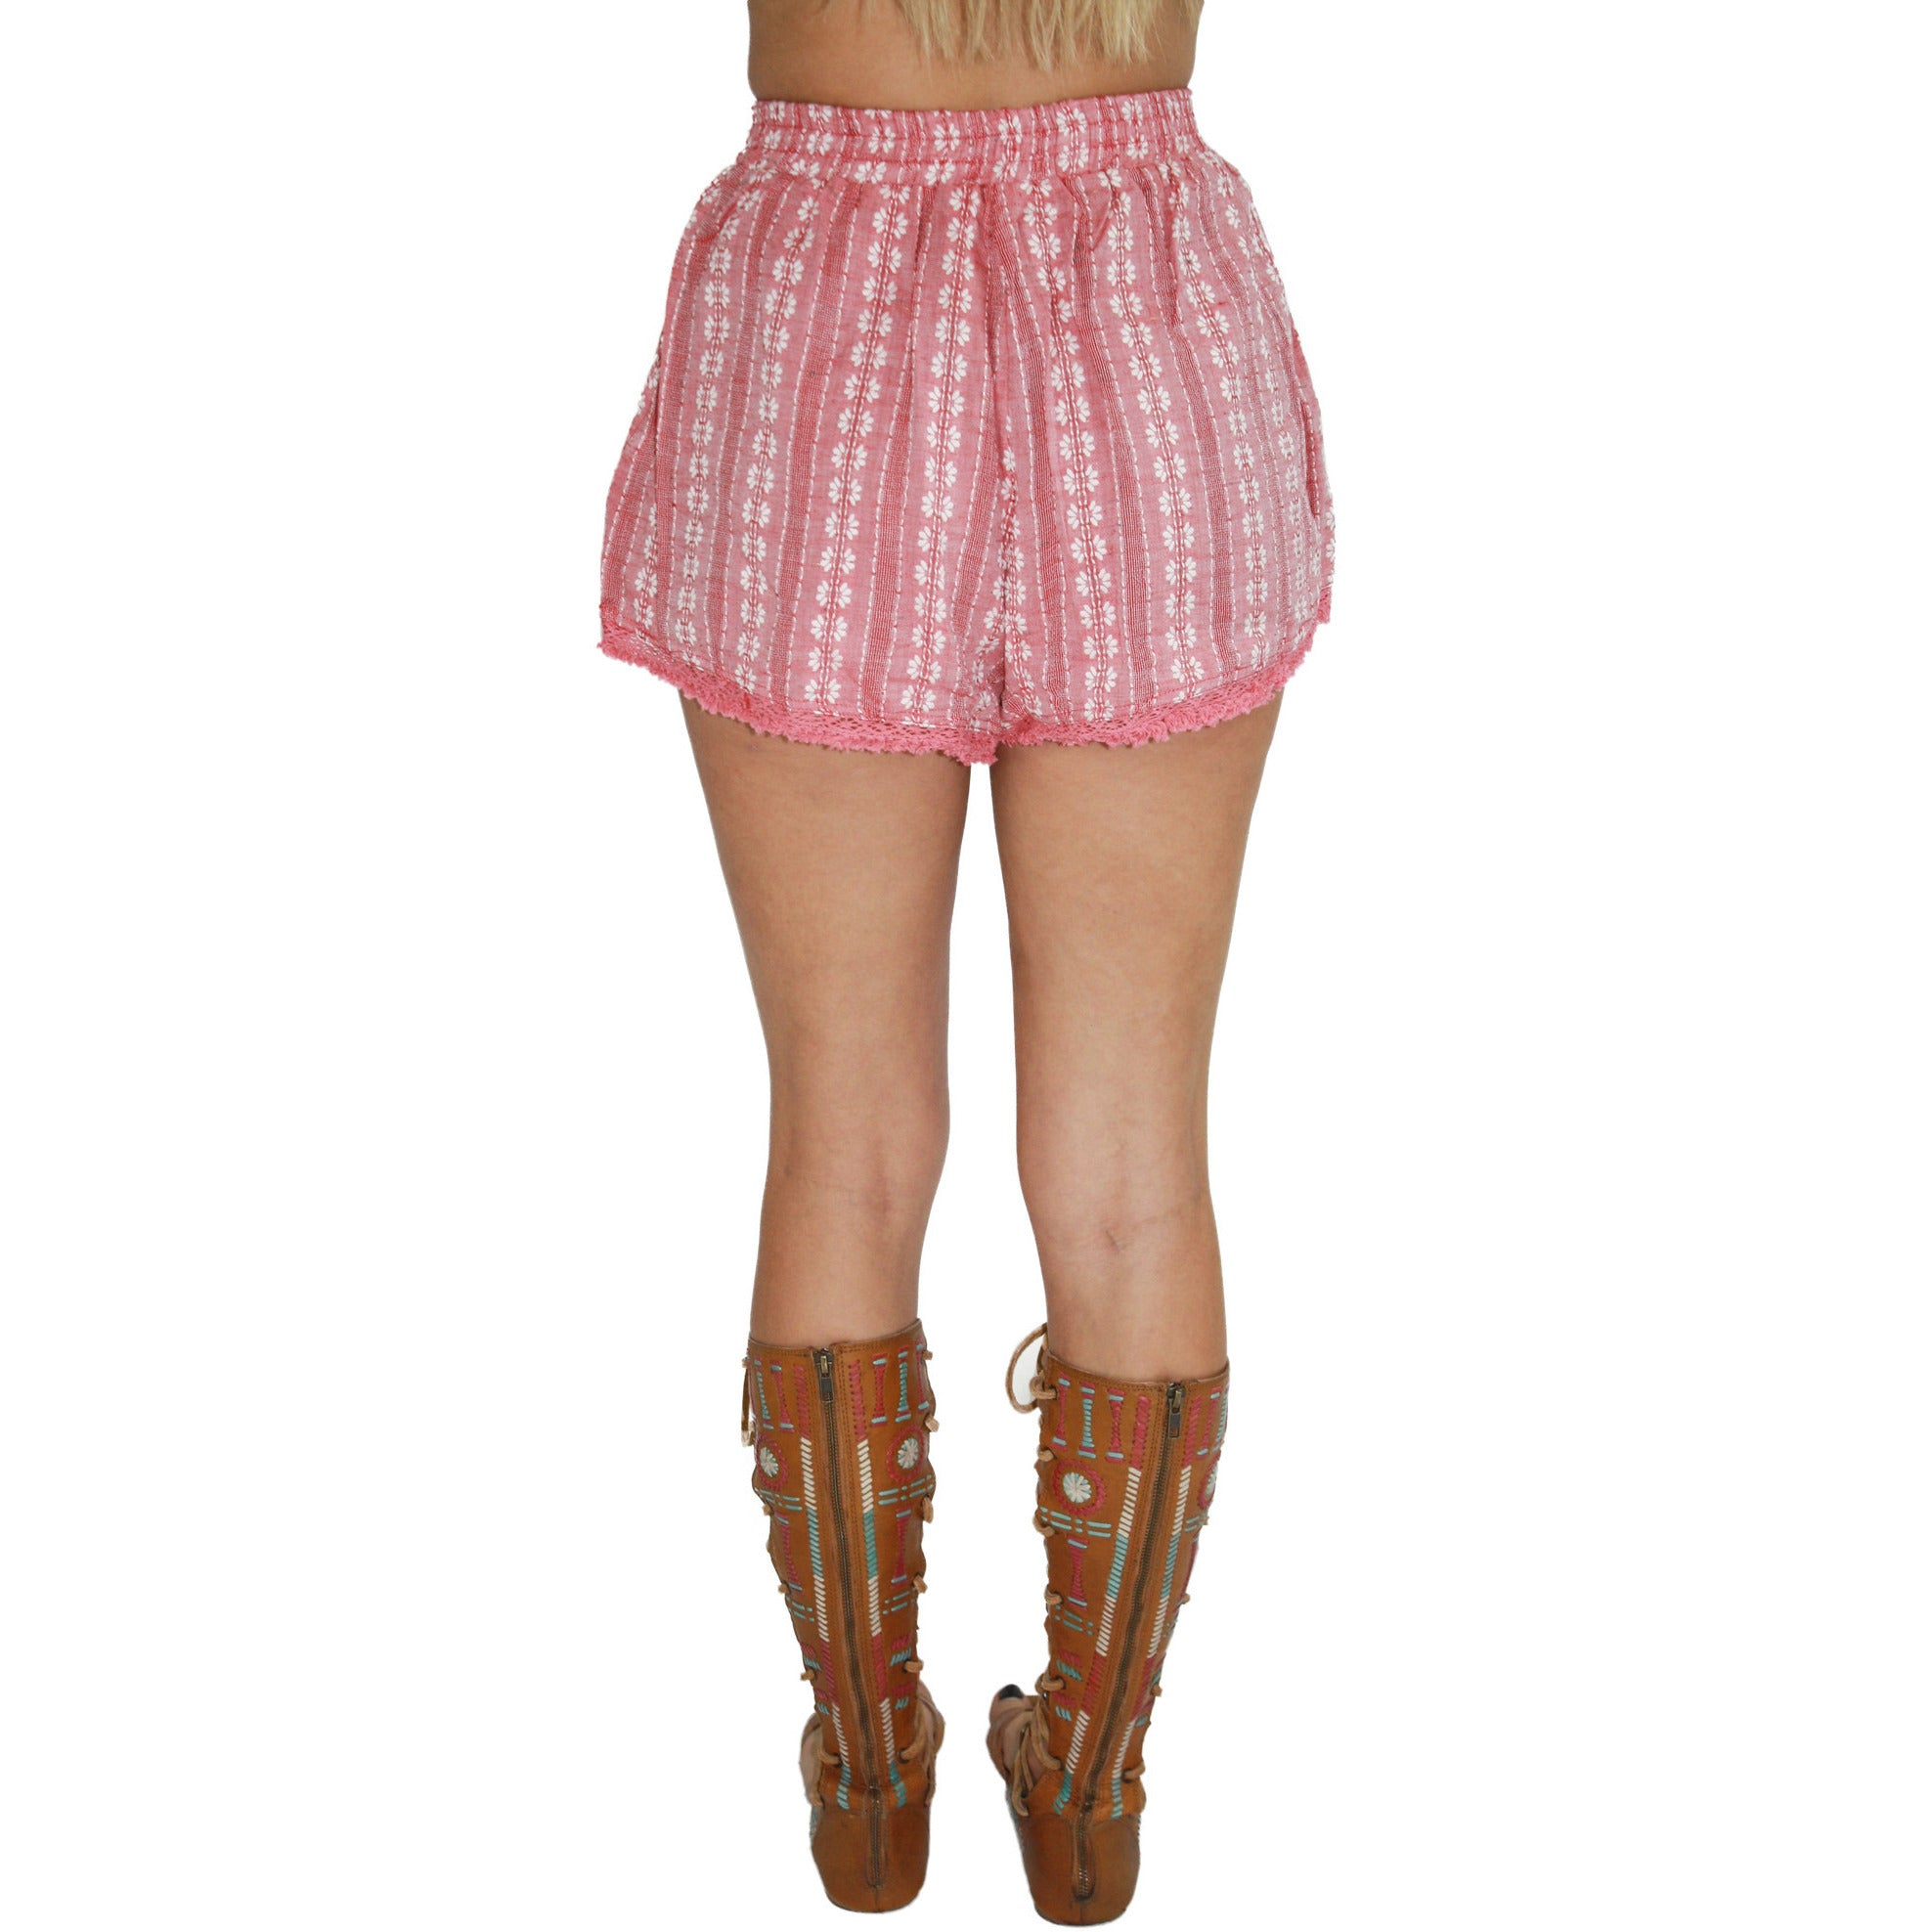 Embroidered Tassle Trim Shorts in Salmon